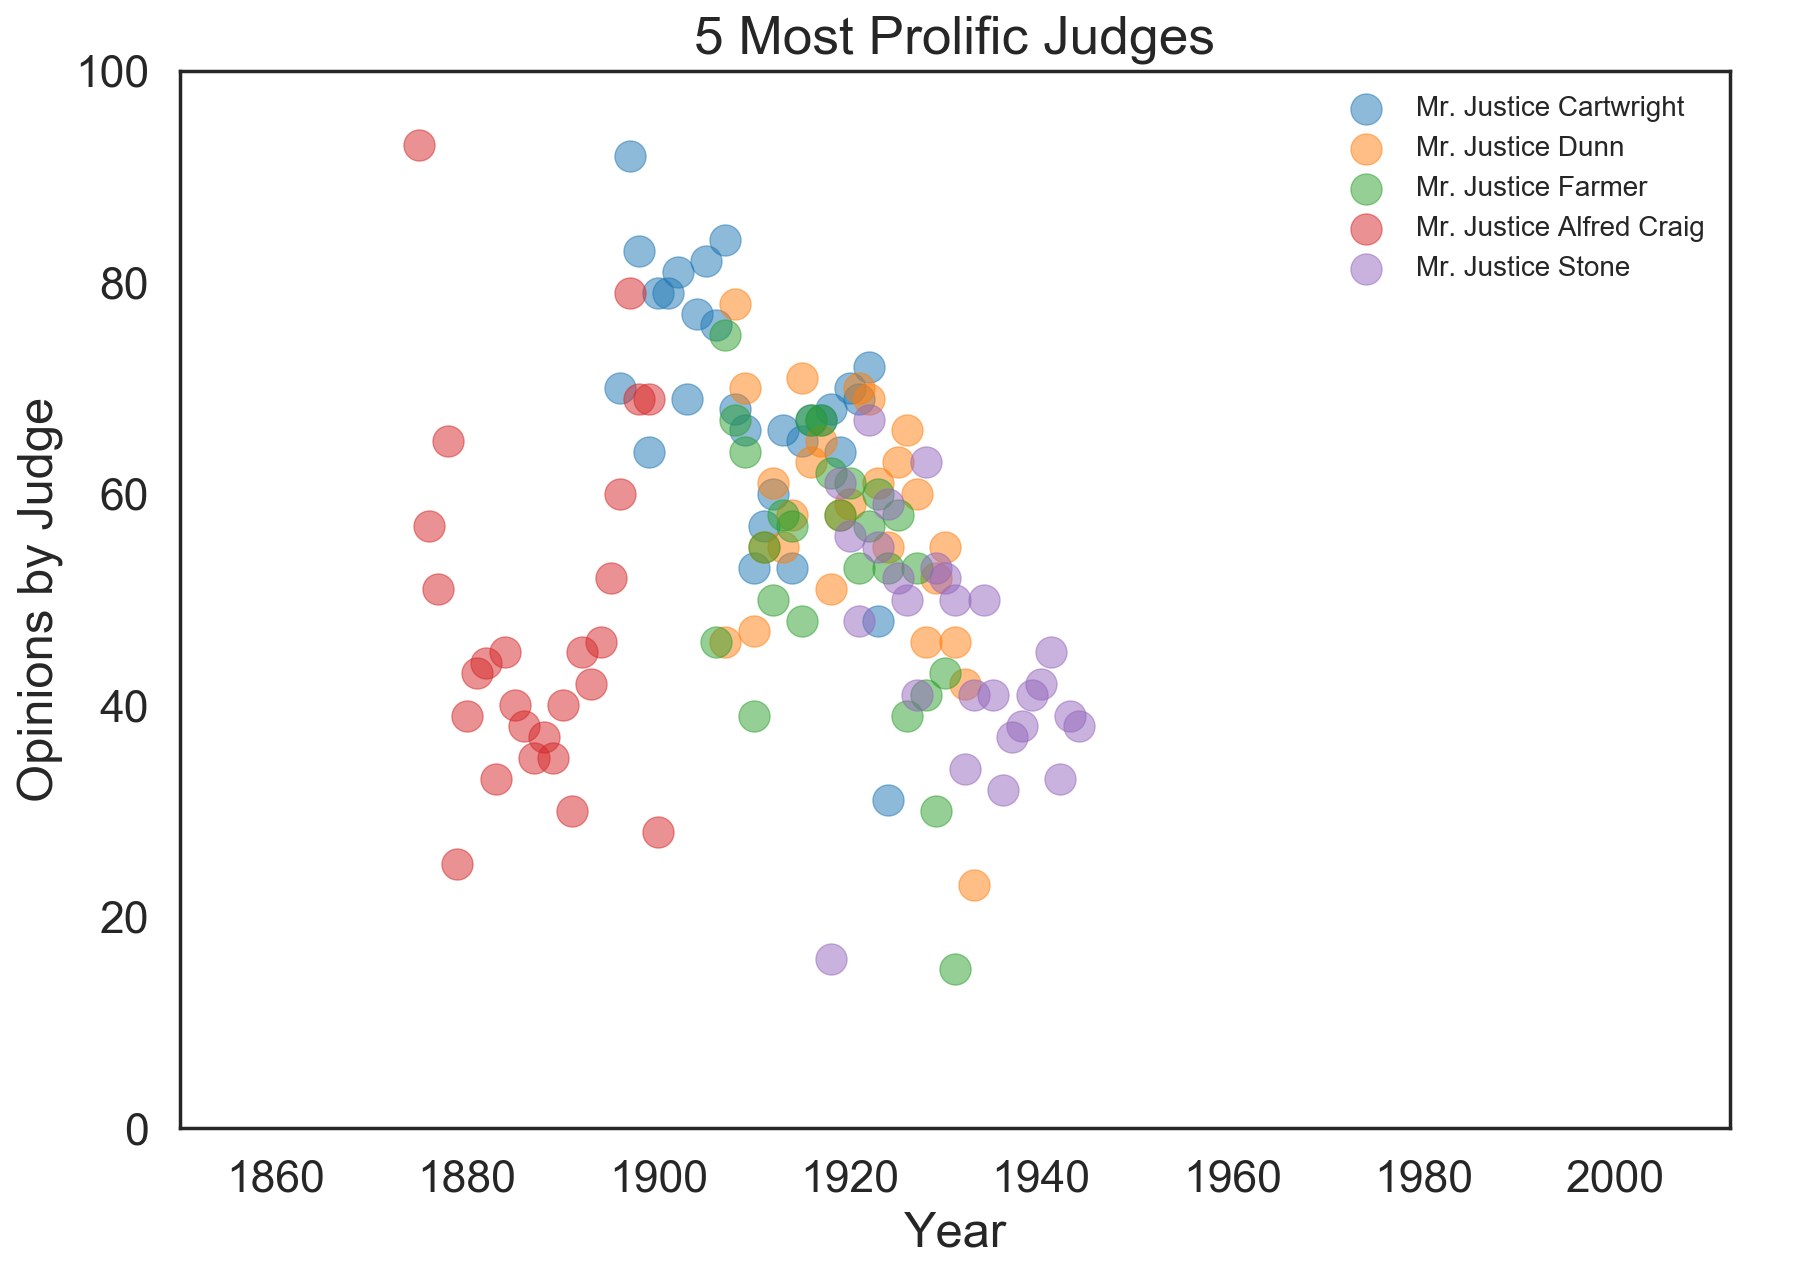 The 5 most prolific judges in the dataset